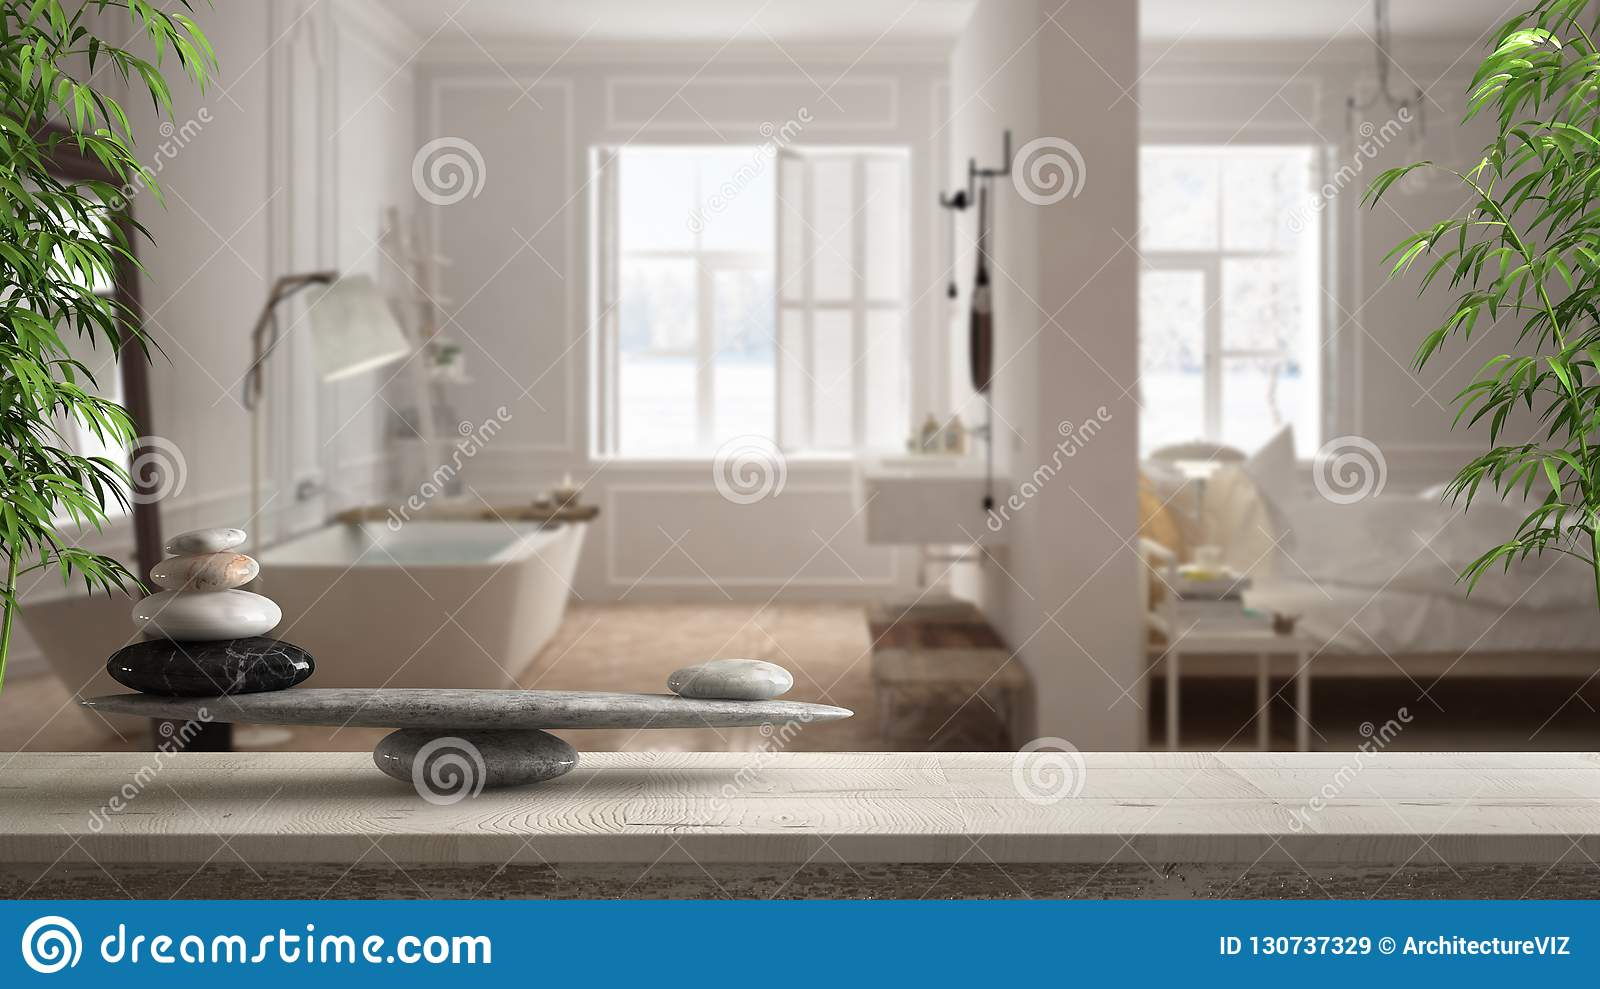 Wooden vintage table or shelf with stone balance, over blurred scandinavian bedroom and bathroom with panoramic window, feng shui,